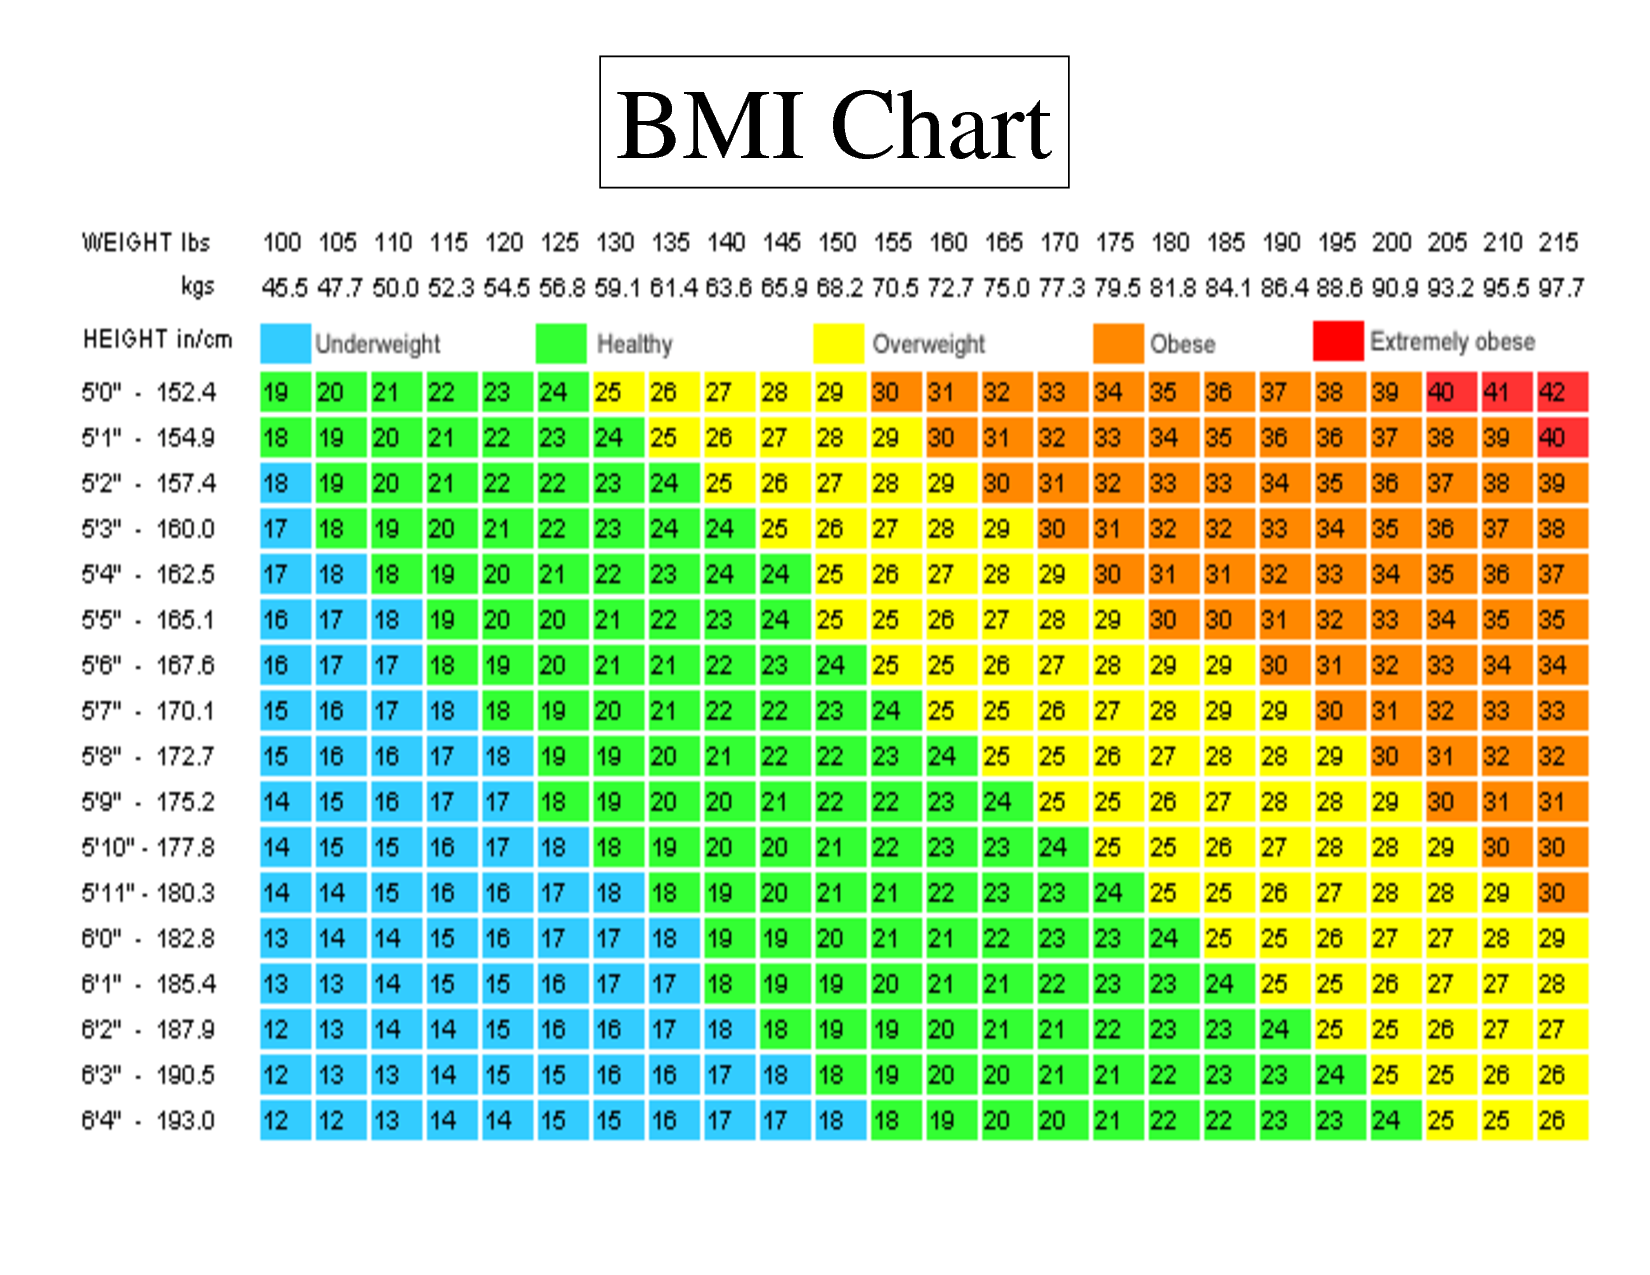 BMI chart | Diabetes Forum • The Global Diabetes Community